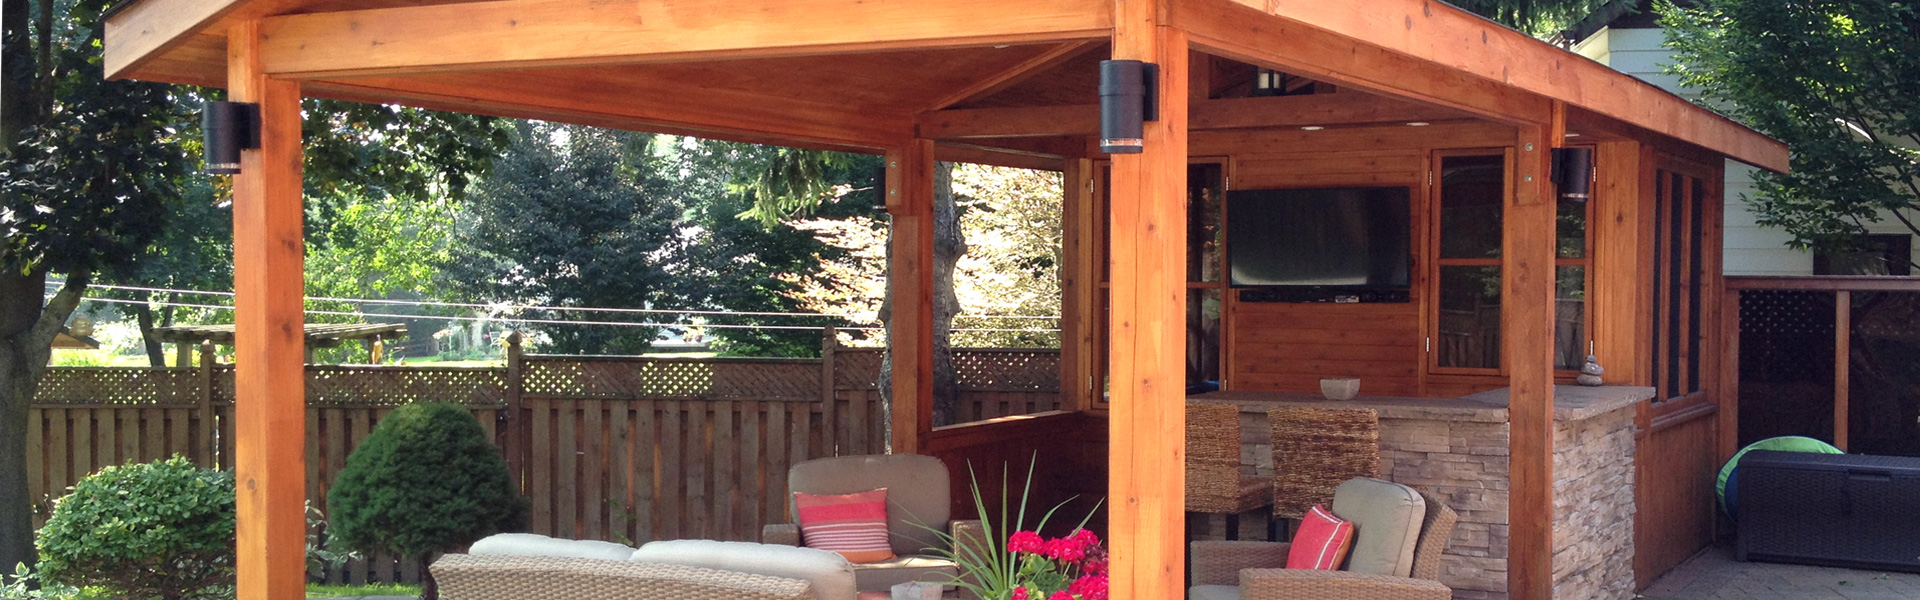 Custom Outdoor Structures Pool Cabanas Toronto Cedar Wood